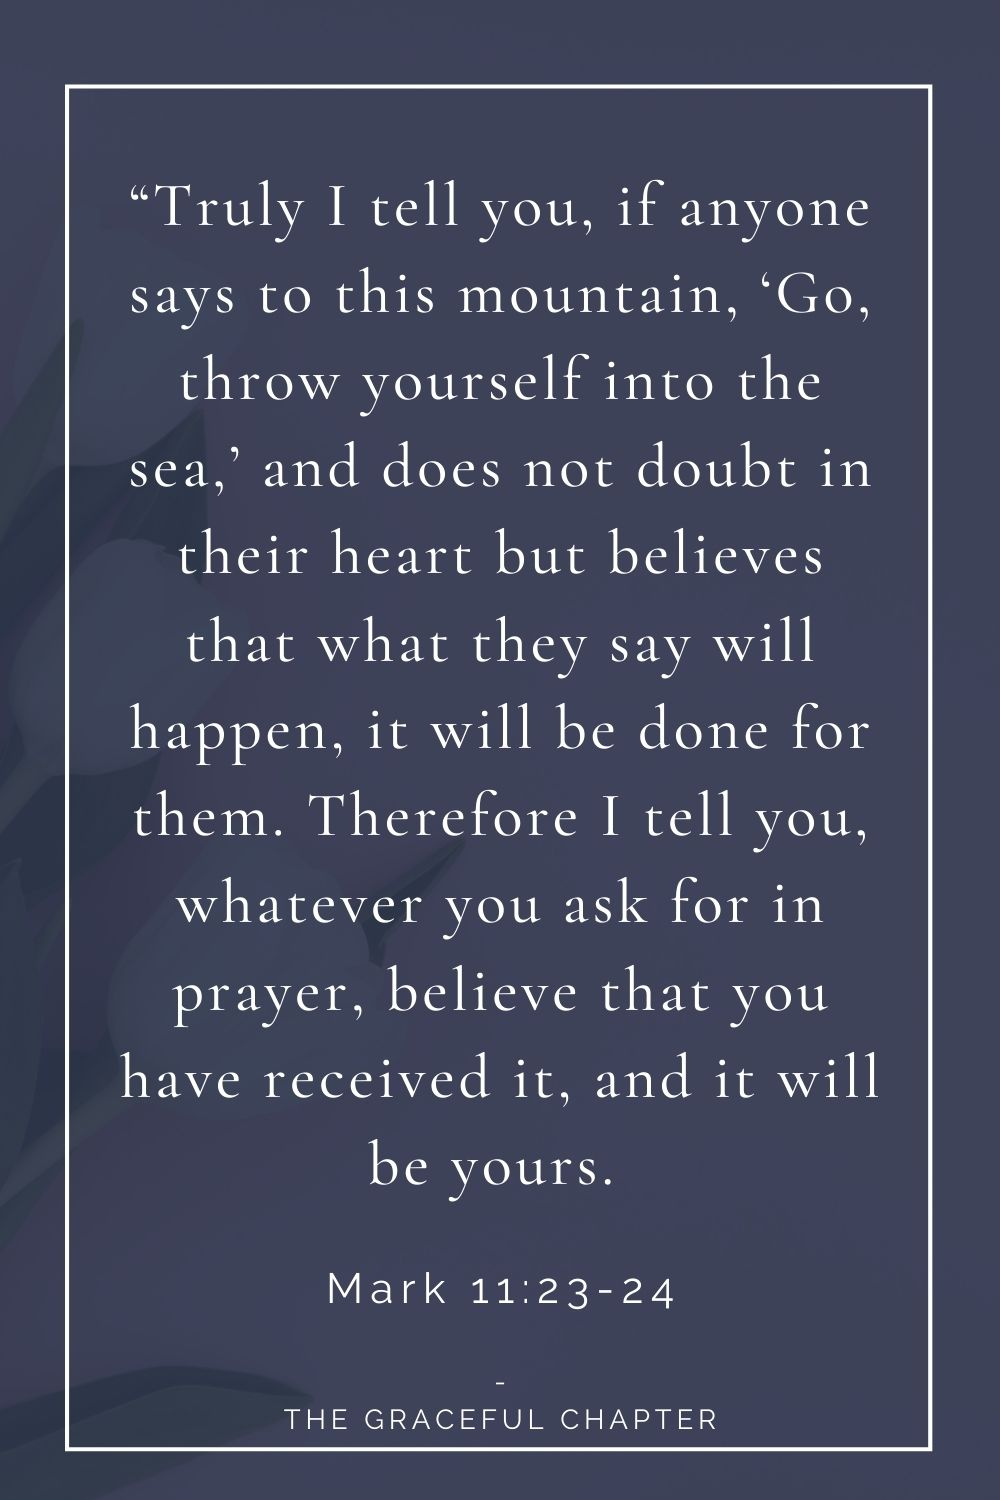 """23 """"Truly I tell you, if anyone says to this mountain, 'Go, throw yourself into the sea,' and does not doubt in their heart but believes that what they say will happen, it will be done for them. Therefore I tell you, whatever you ask for in prayer, believe that you have received it, and it will be yours.  Mark 11:23-24"""